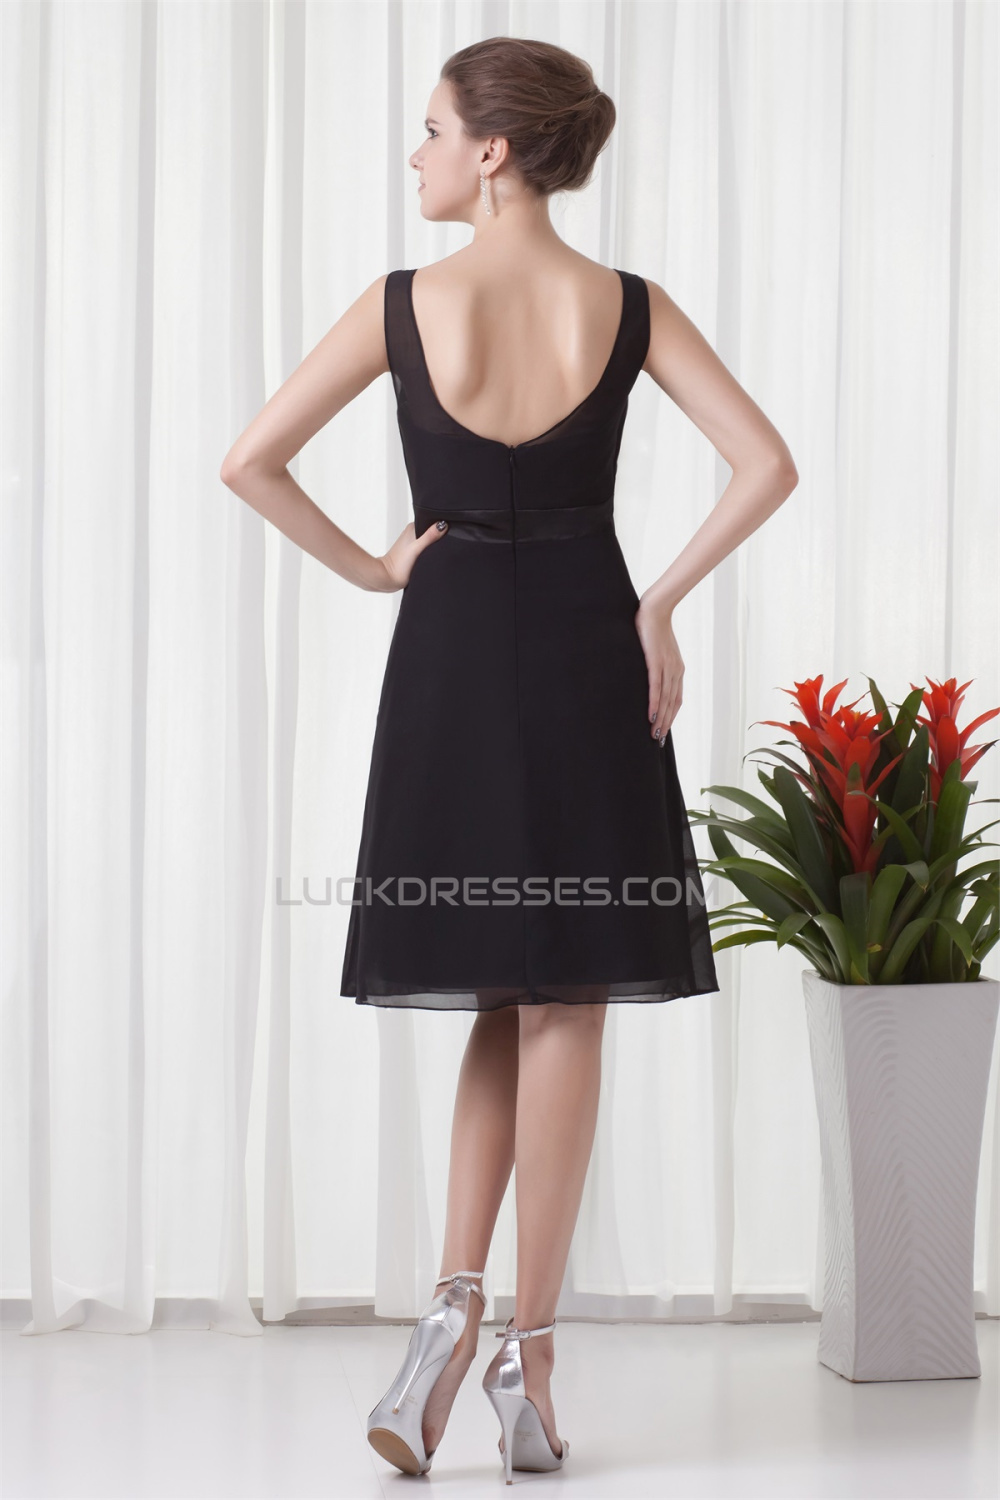 short black wedding dresses black chiffon bridesmaid dresses 02010550 7344